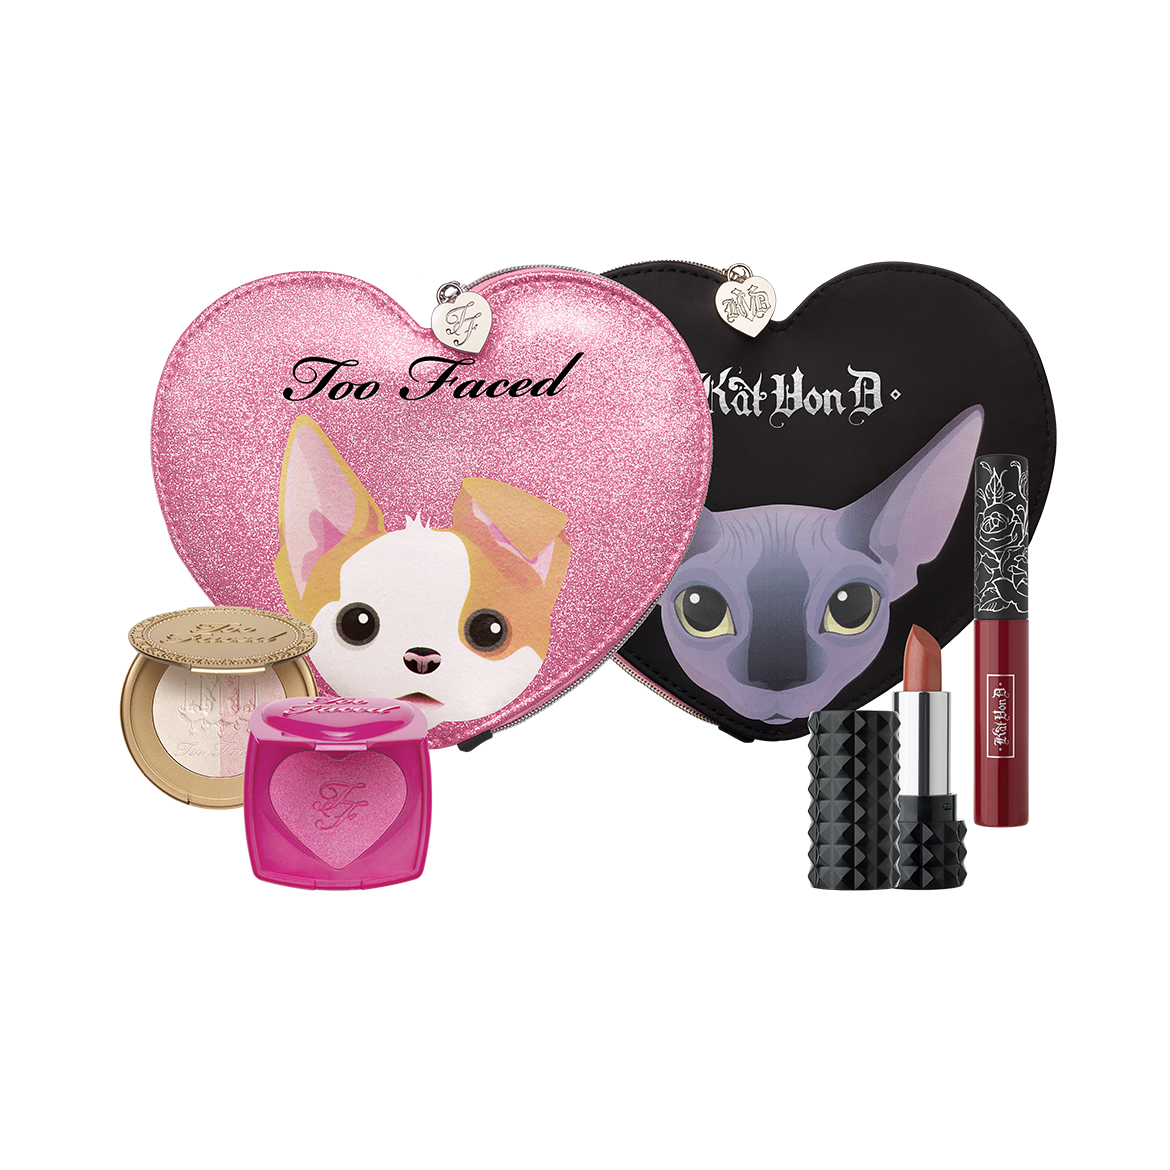 There's an entire other part to the Too Faced x Kat Von D collab and it is BEYOND adorbs